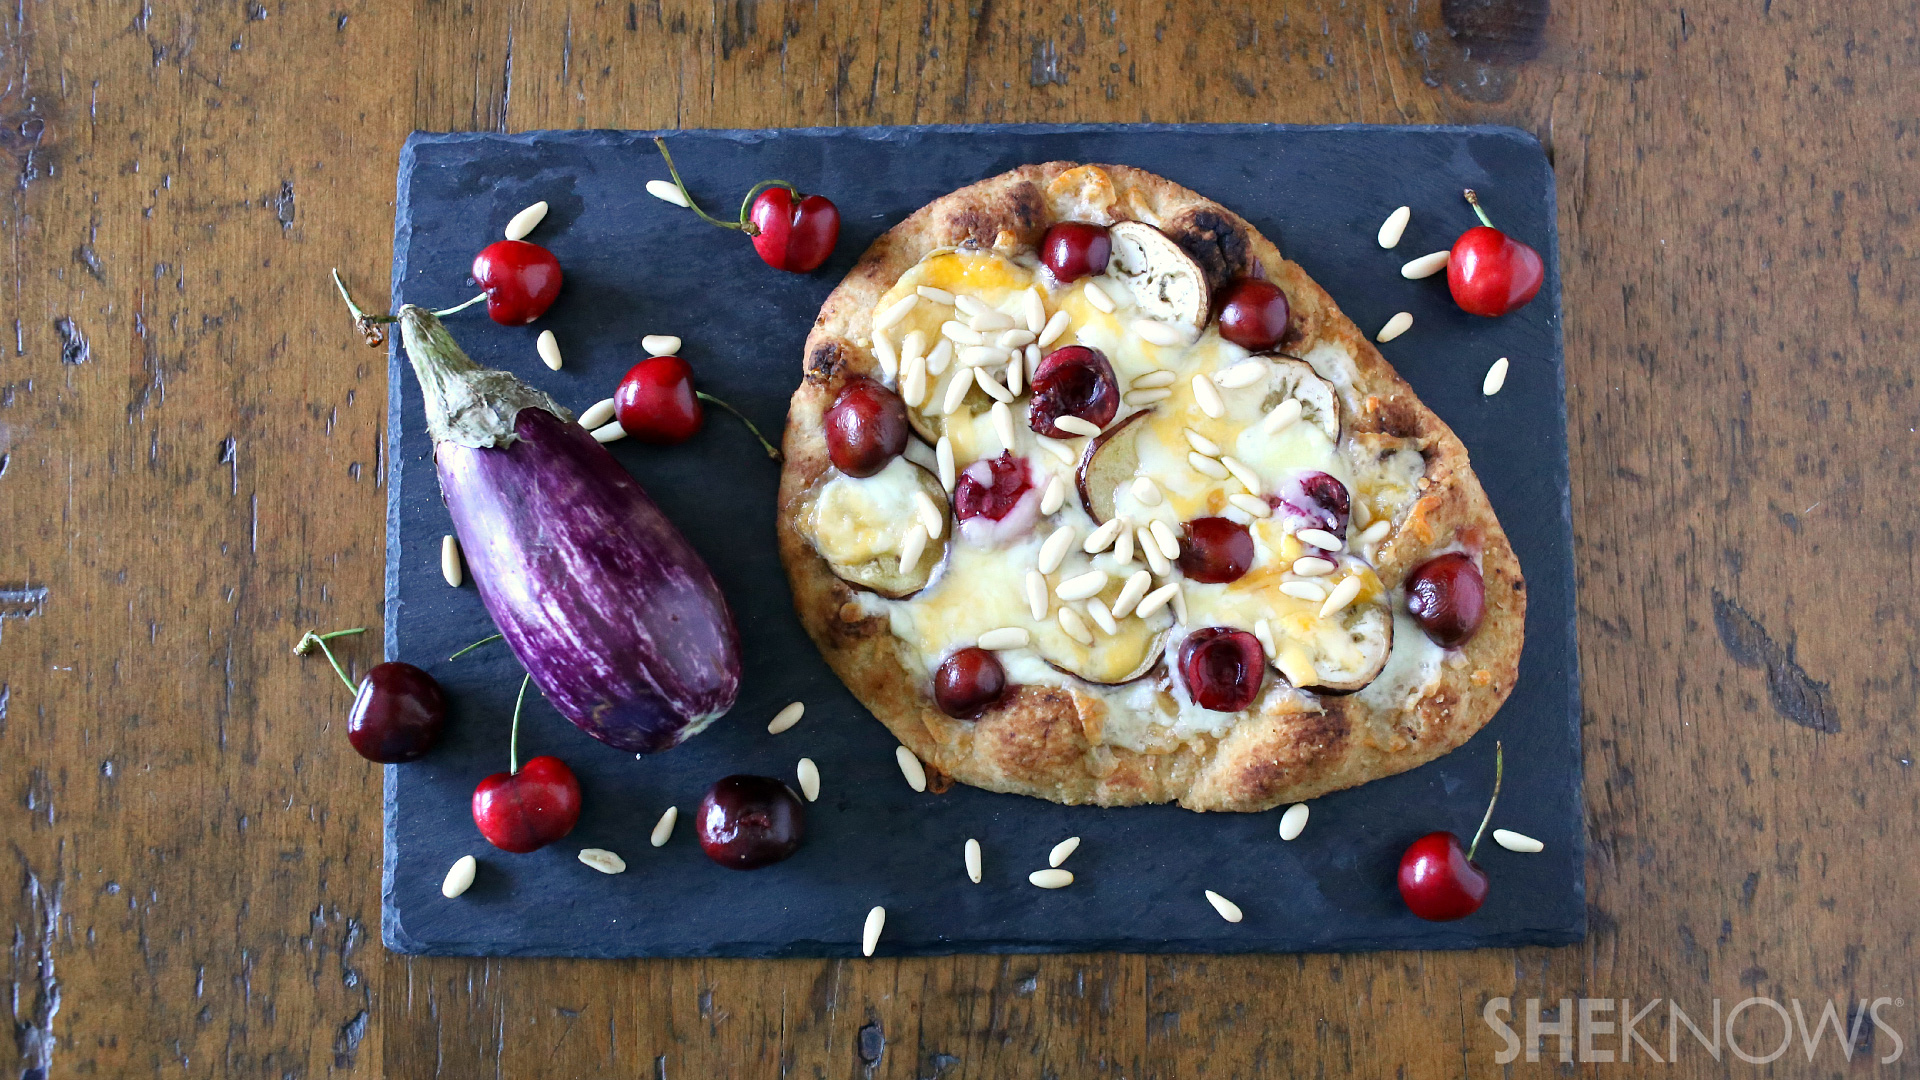 Eggplant, pine nut and cherry flatbread pizza